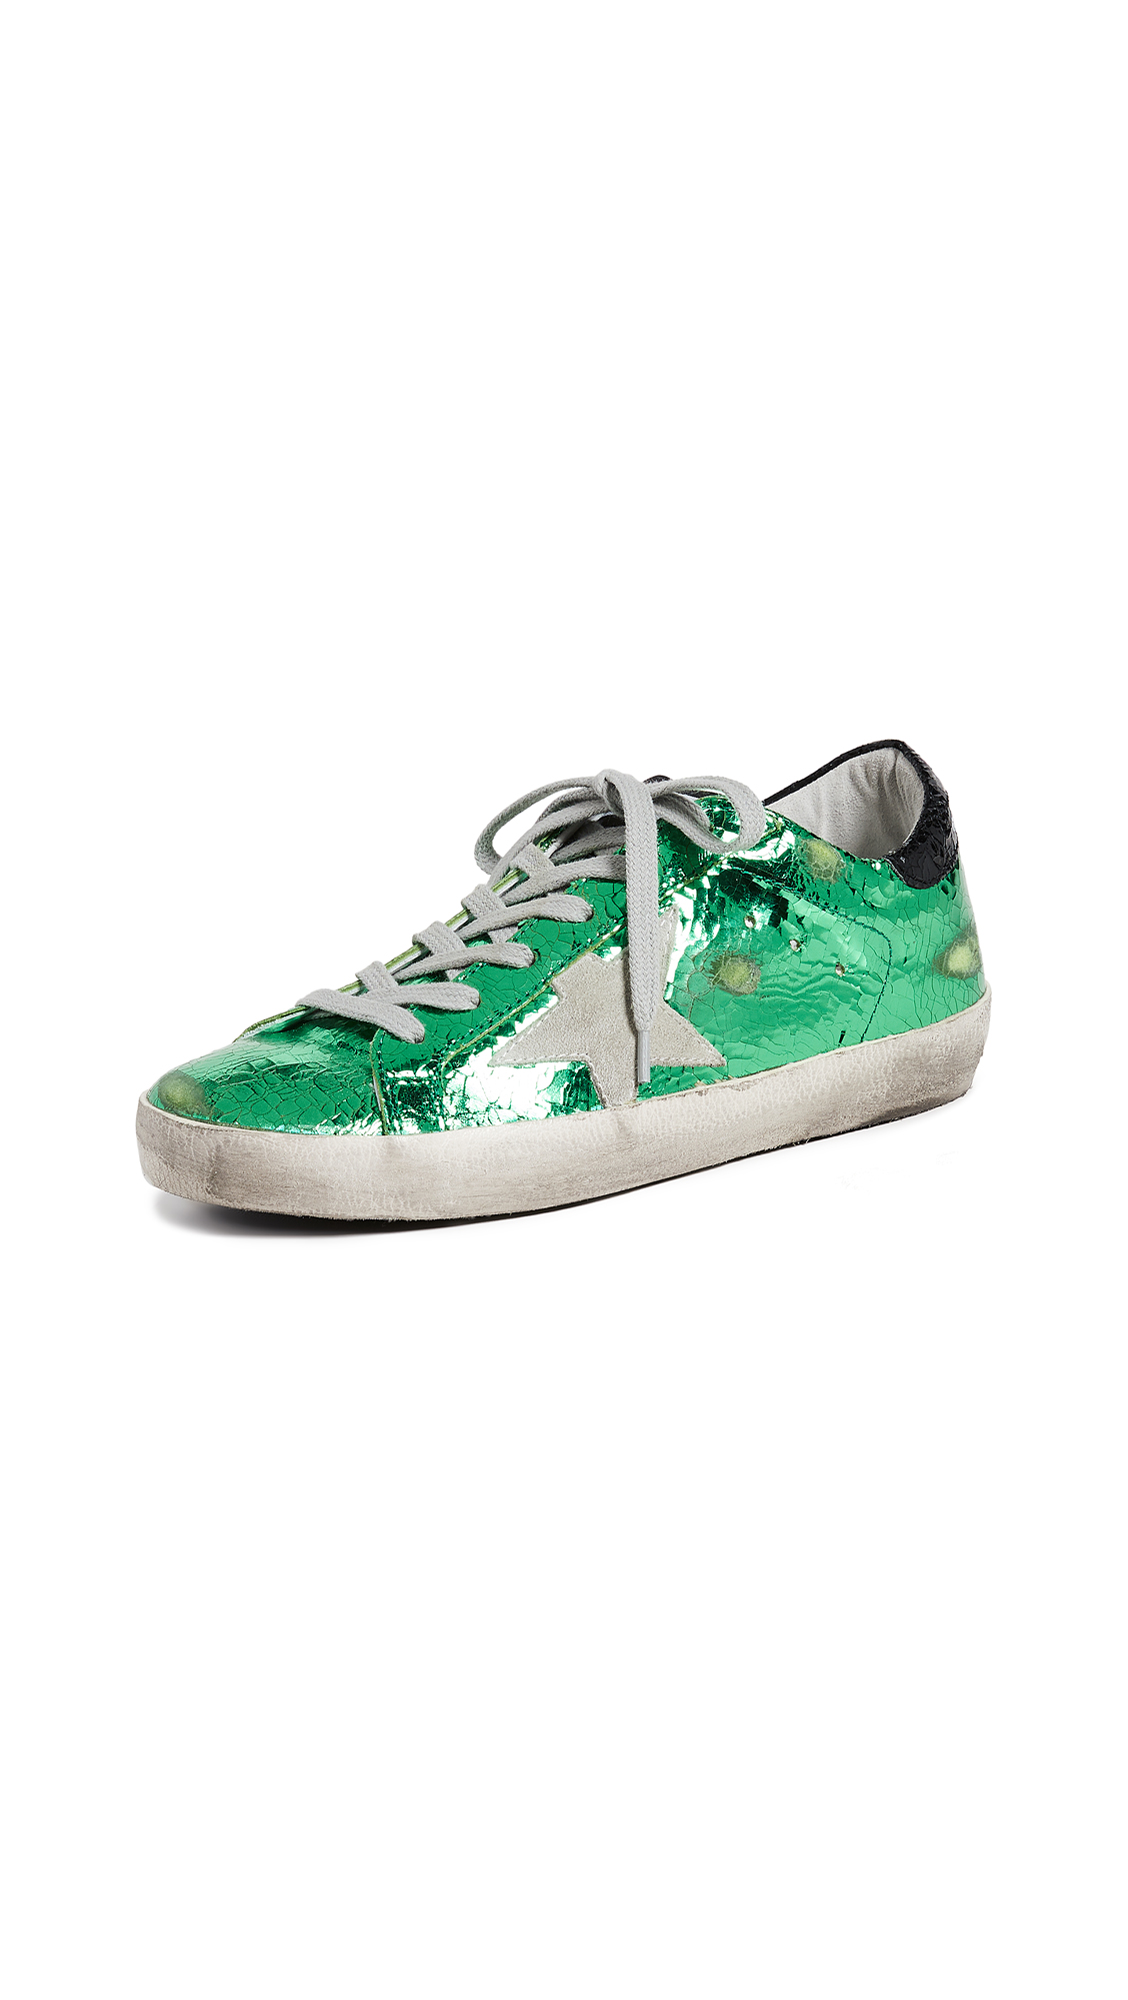 Golden Goose Superstar Sneakers - Green Crack/Ice